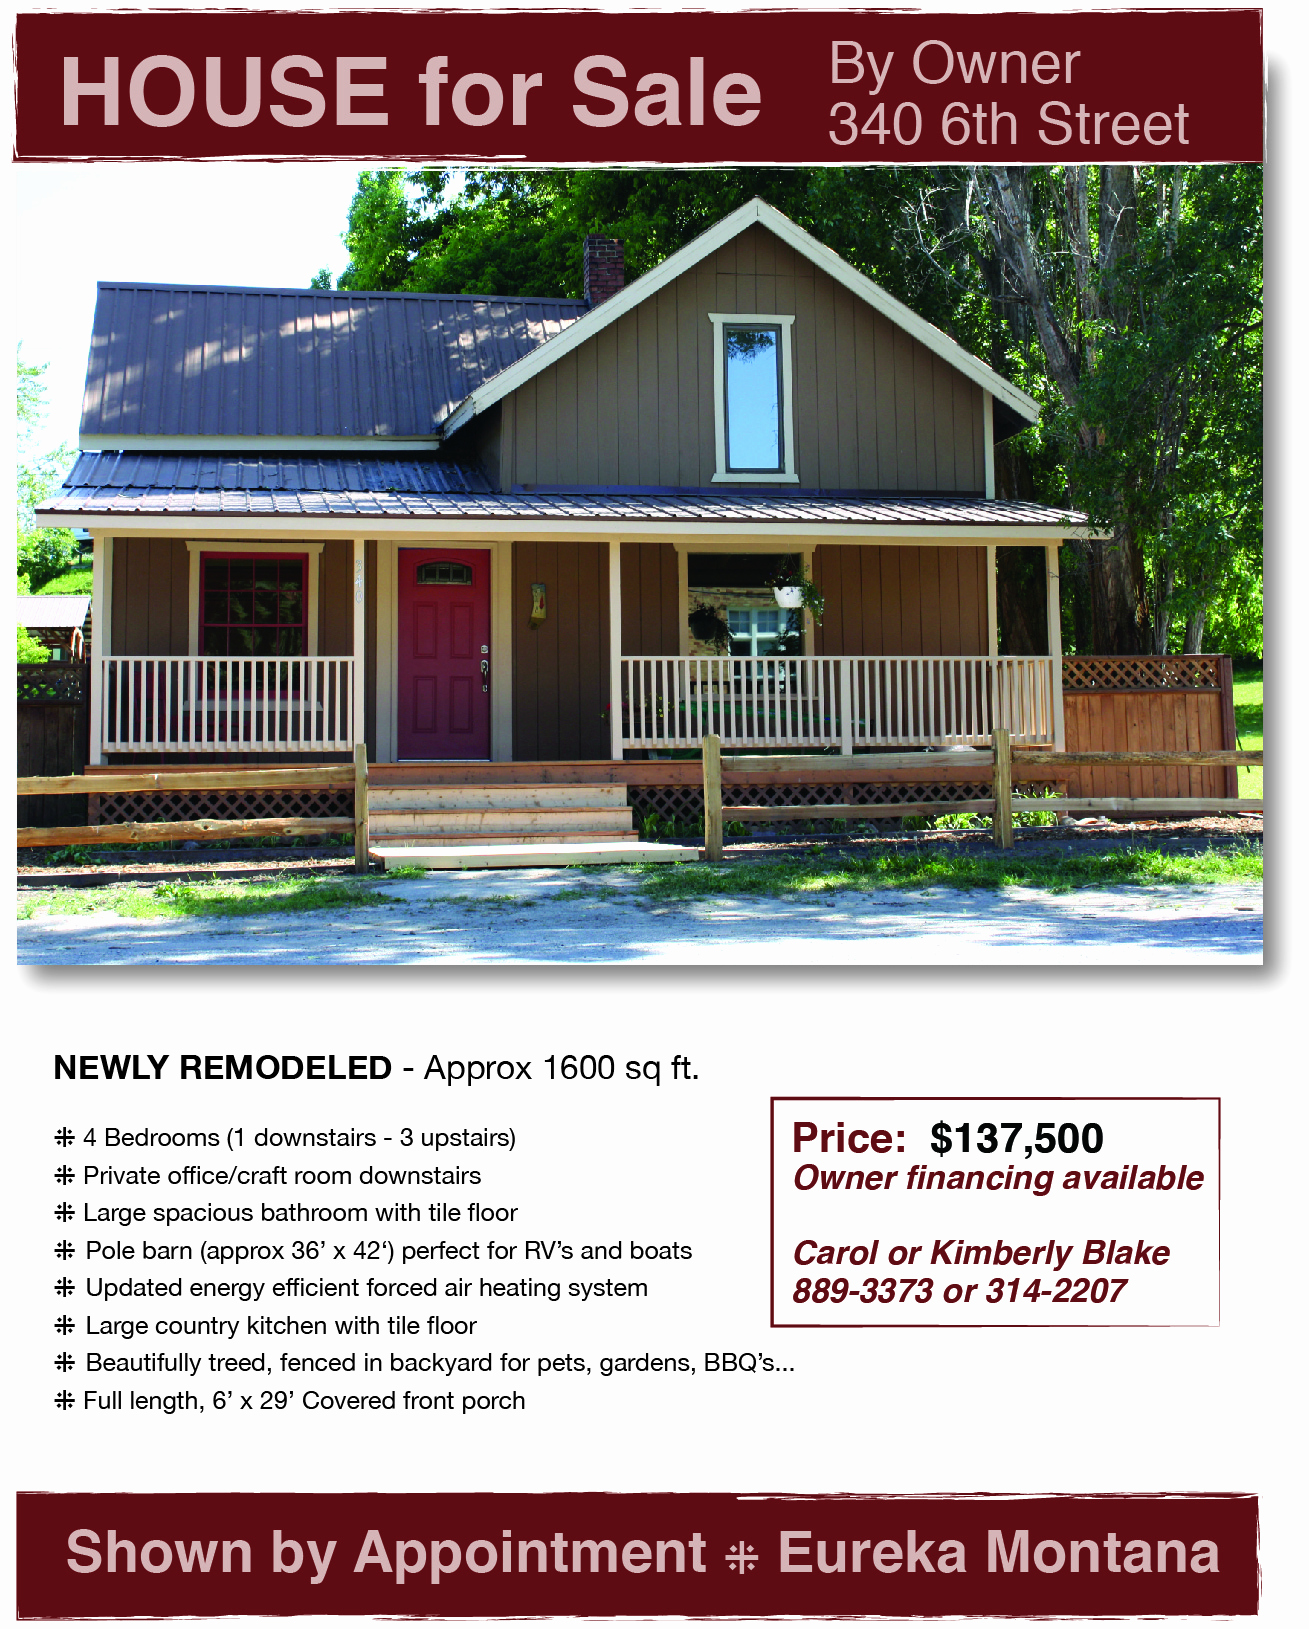 Home for Sale Flyer Best Of Newly Remodeled House for Sale